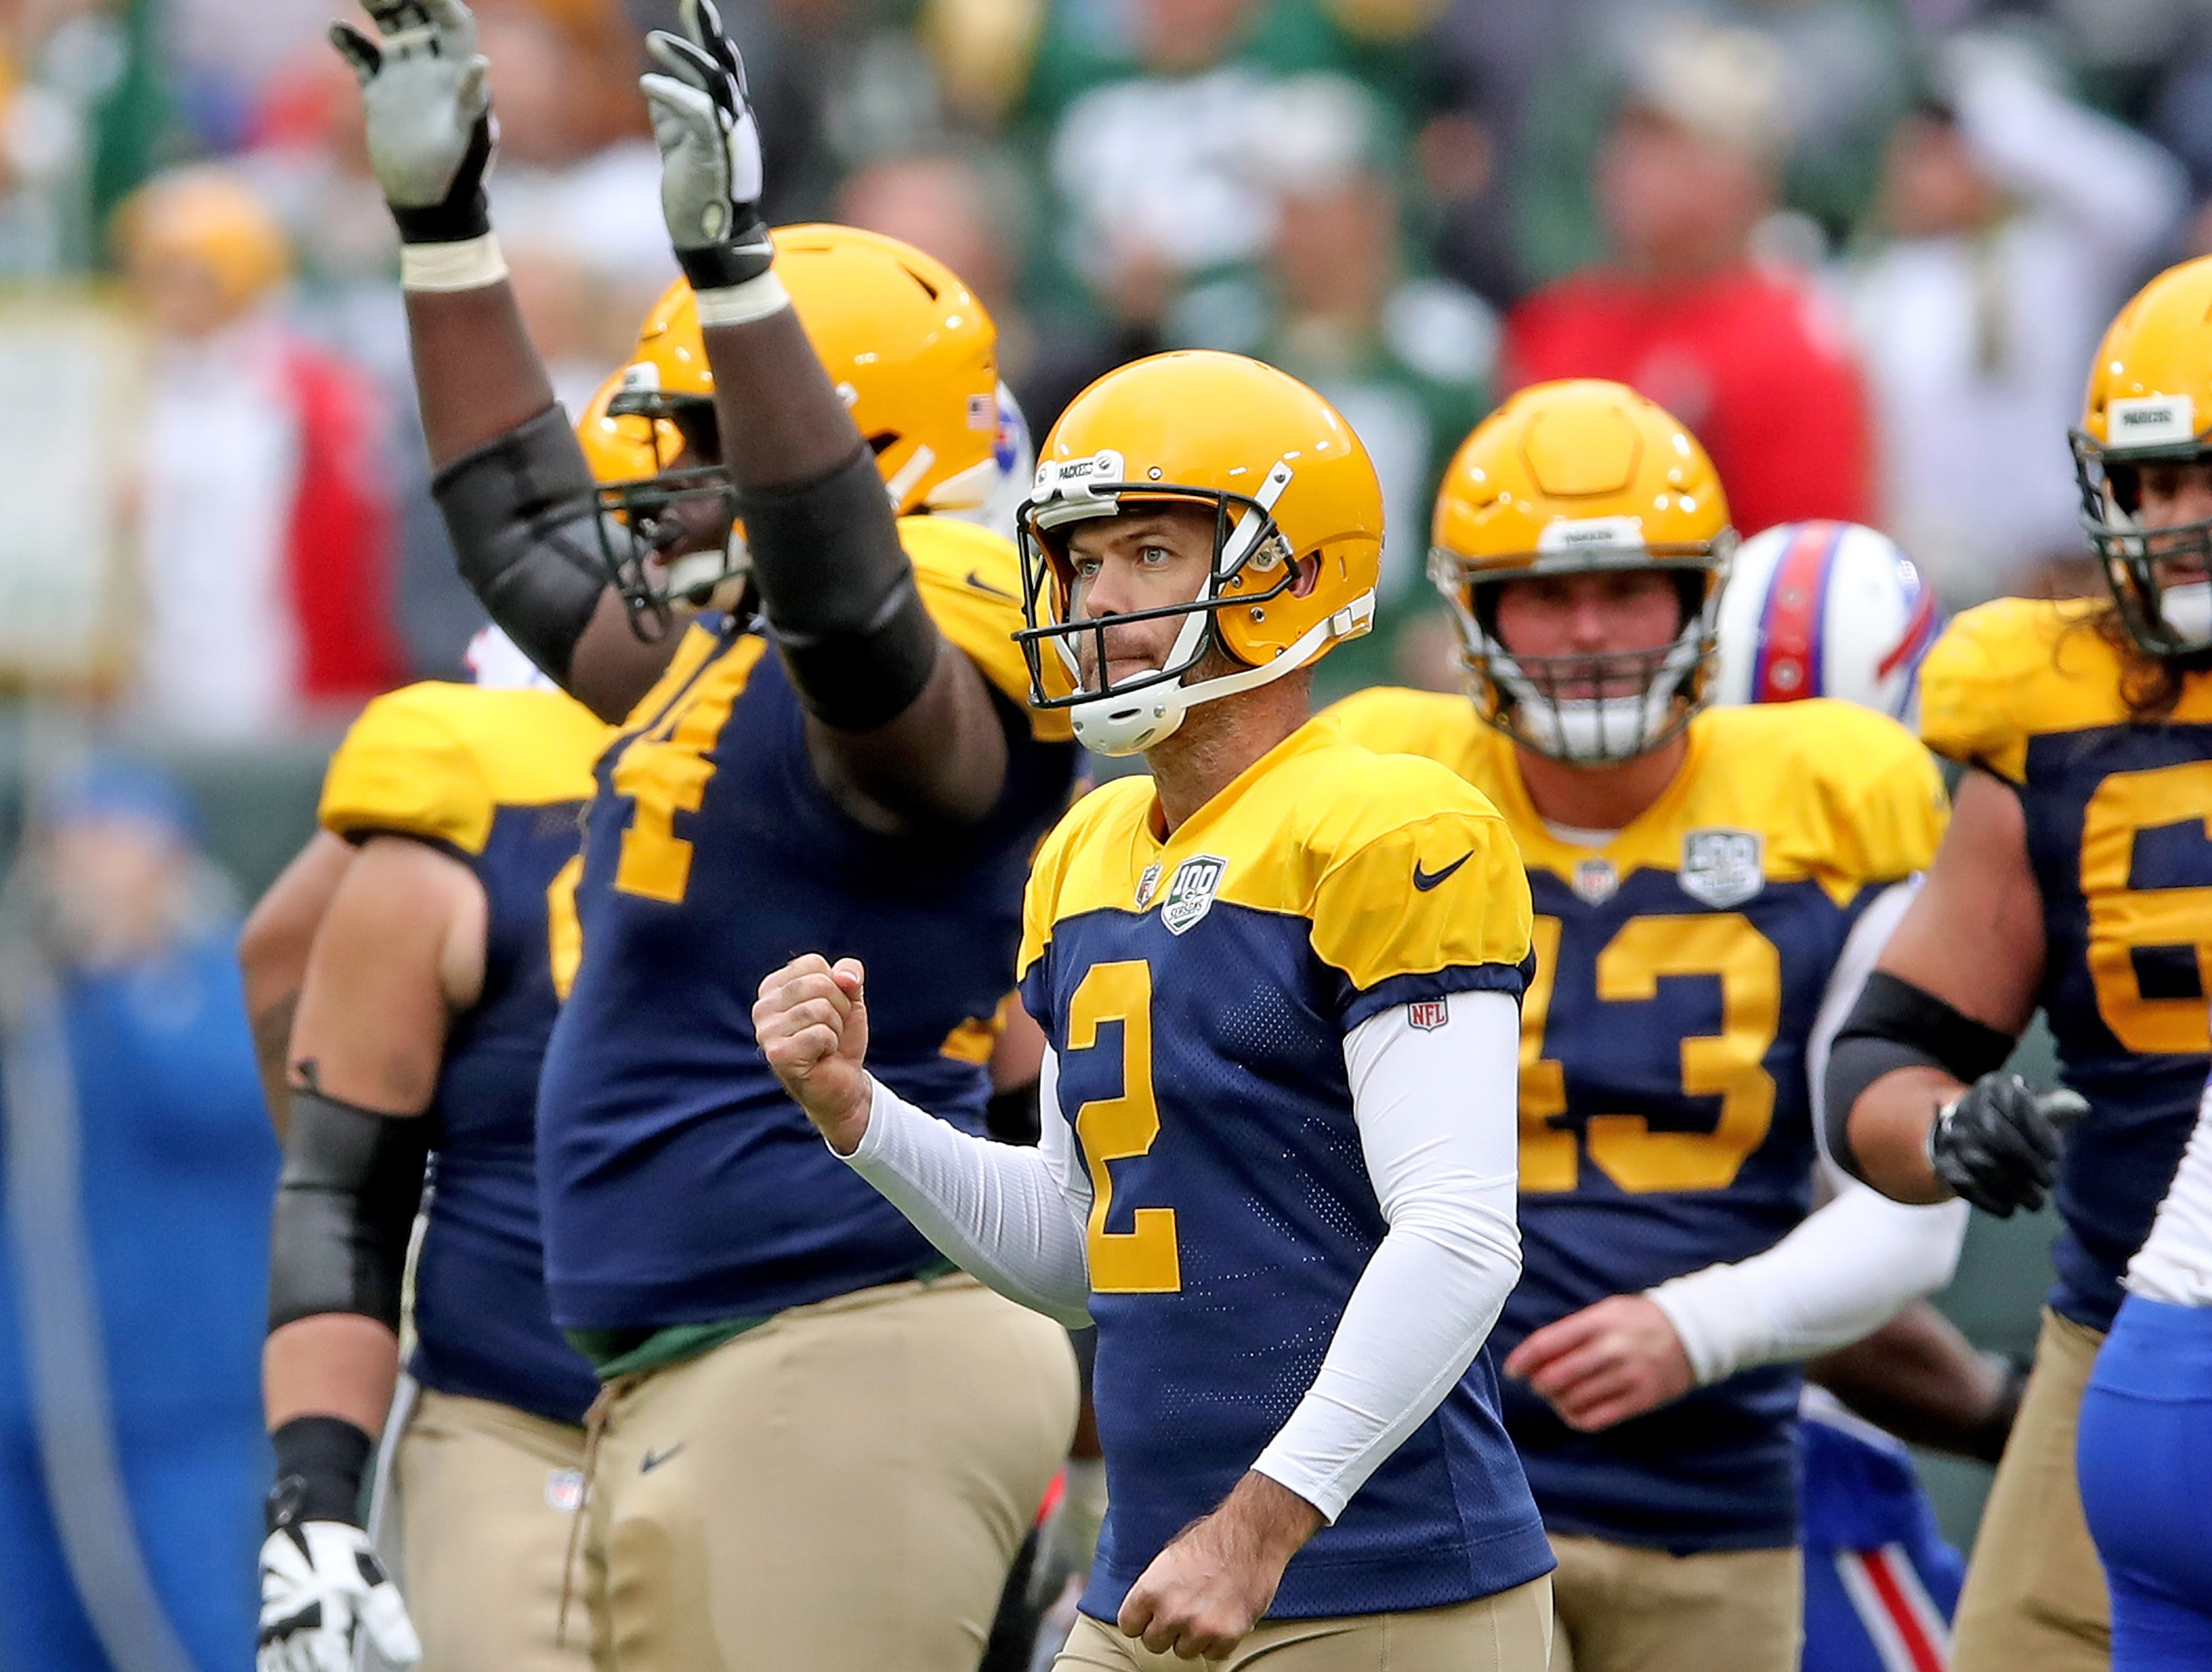 Green Bay Packers kicker Mason Crosby (2) celebrates his 52 yard field goal against the Buffalo Bills Sunday September 30, 2018 at Lambeau Field in Green Bay, Wis.